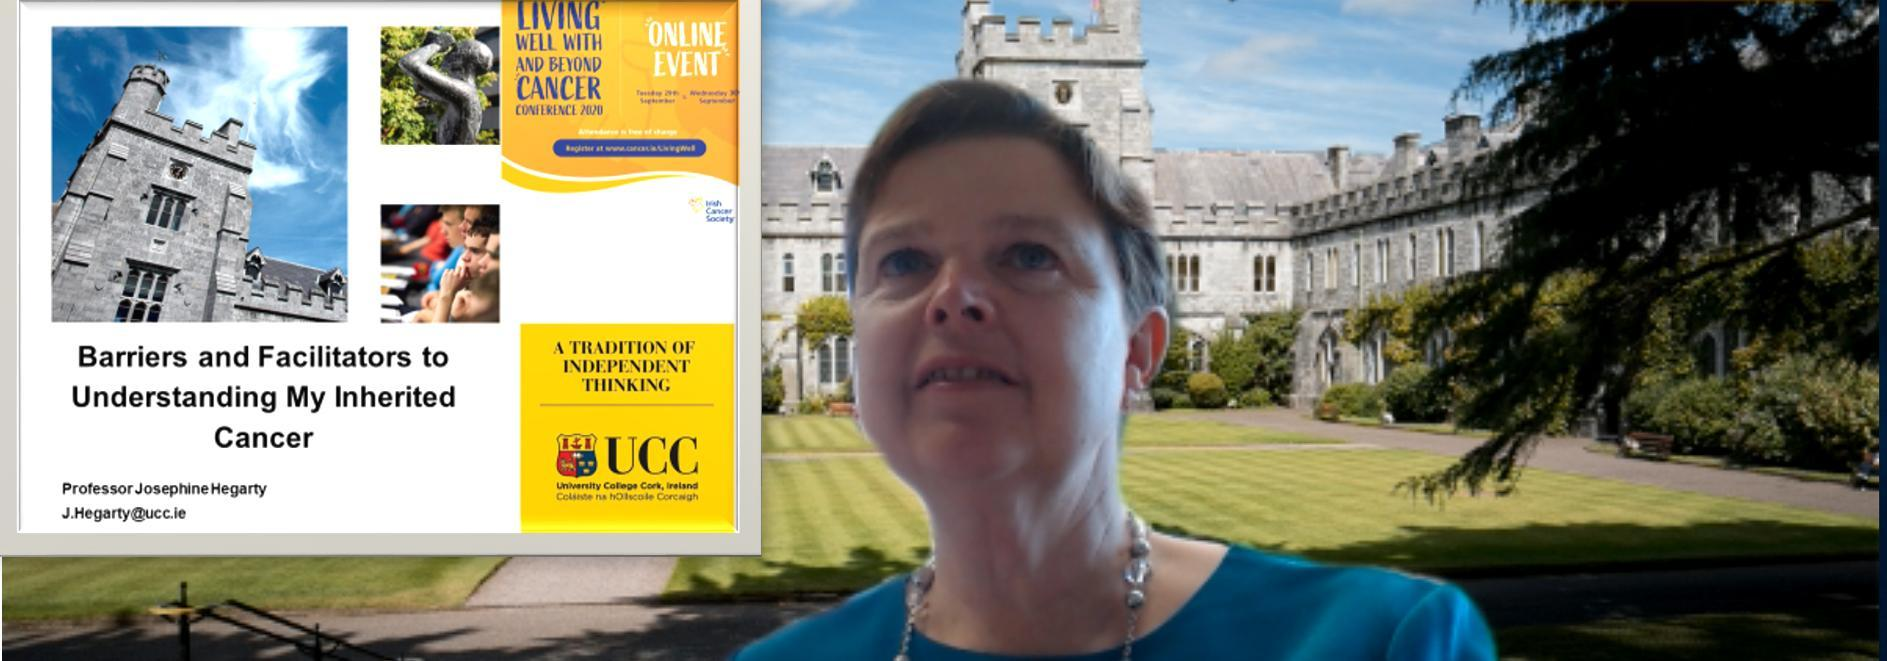 Professor Hegarty presents at the Irish Cancer Society Annual National Conference